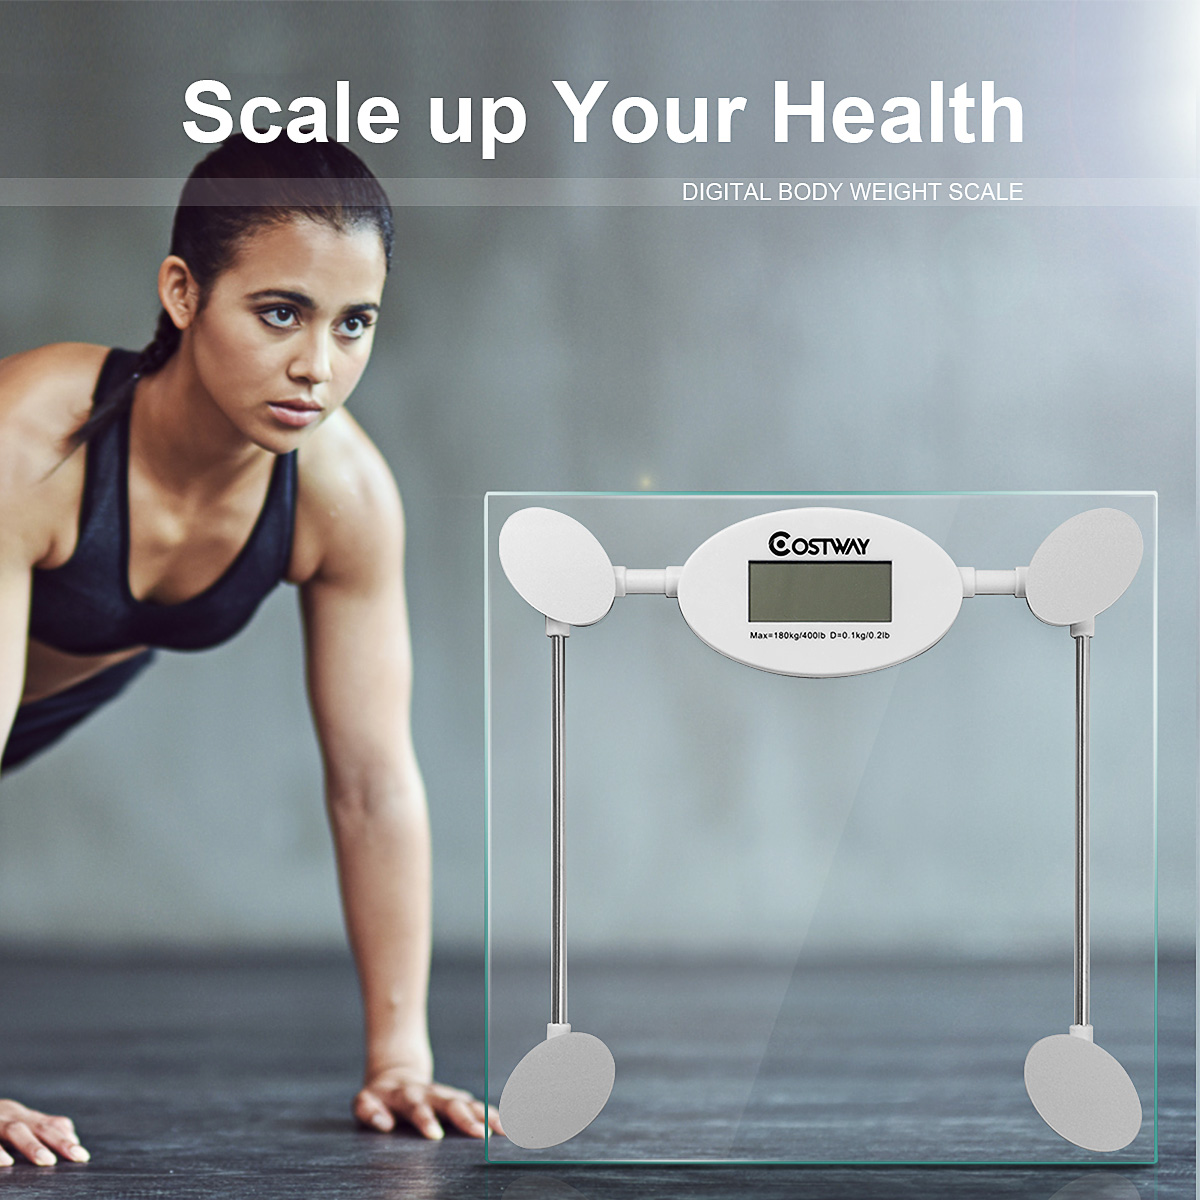 Costway 180kg/396lb Round Digital Personal Bathroom Body Weight Heath Fitness LCD Scale